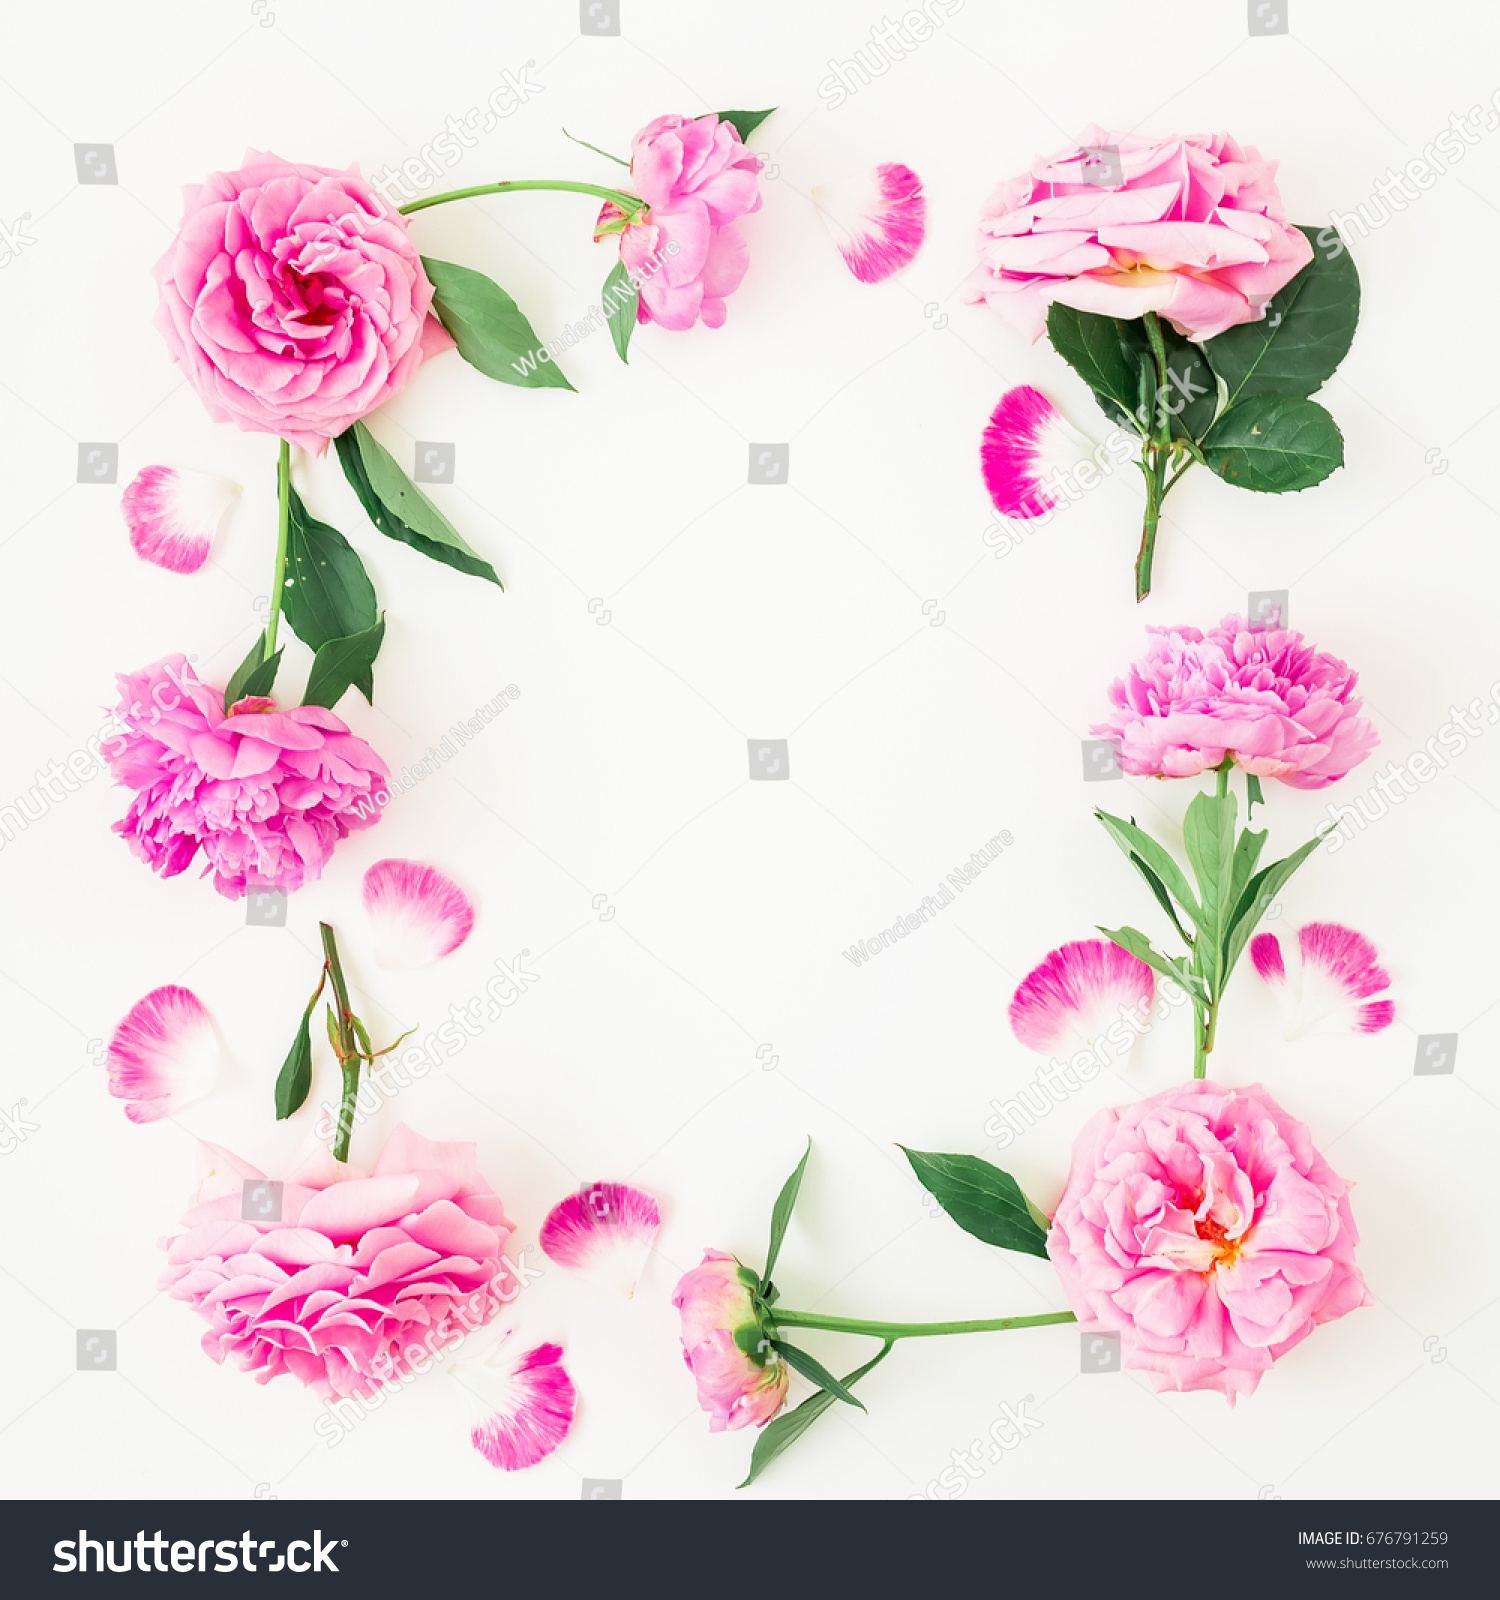 Floral Frame Made Of Pink Flowers On White Background Floral